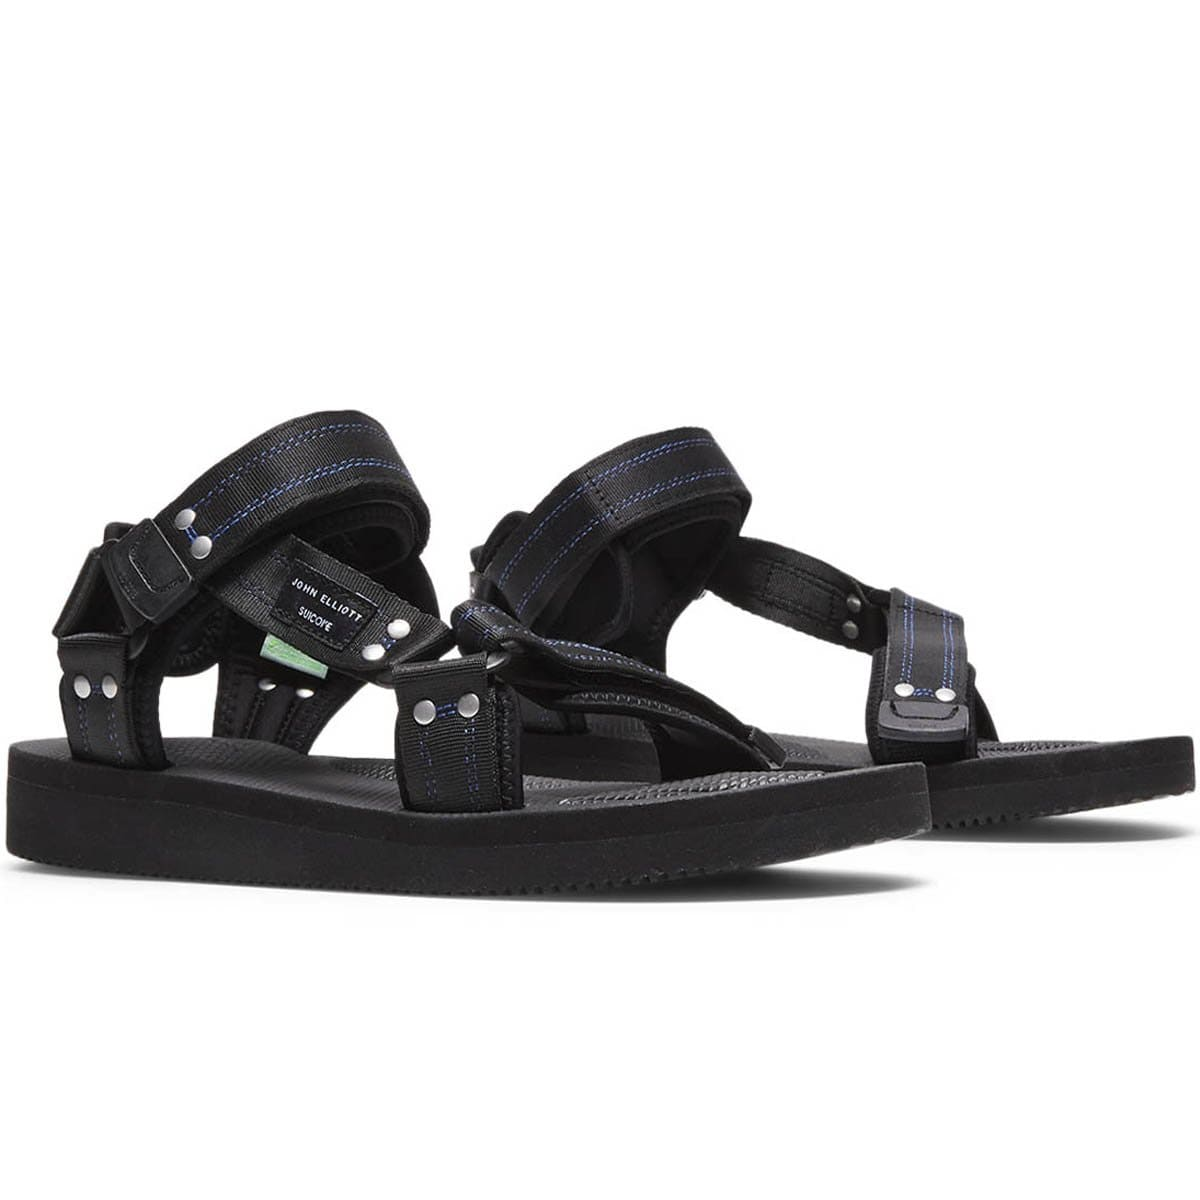 Suicoke Shoes x John Elliott KIPA